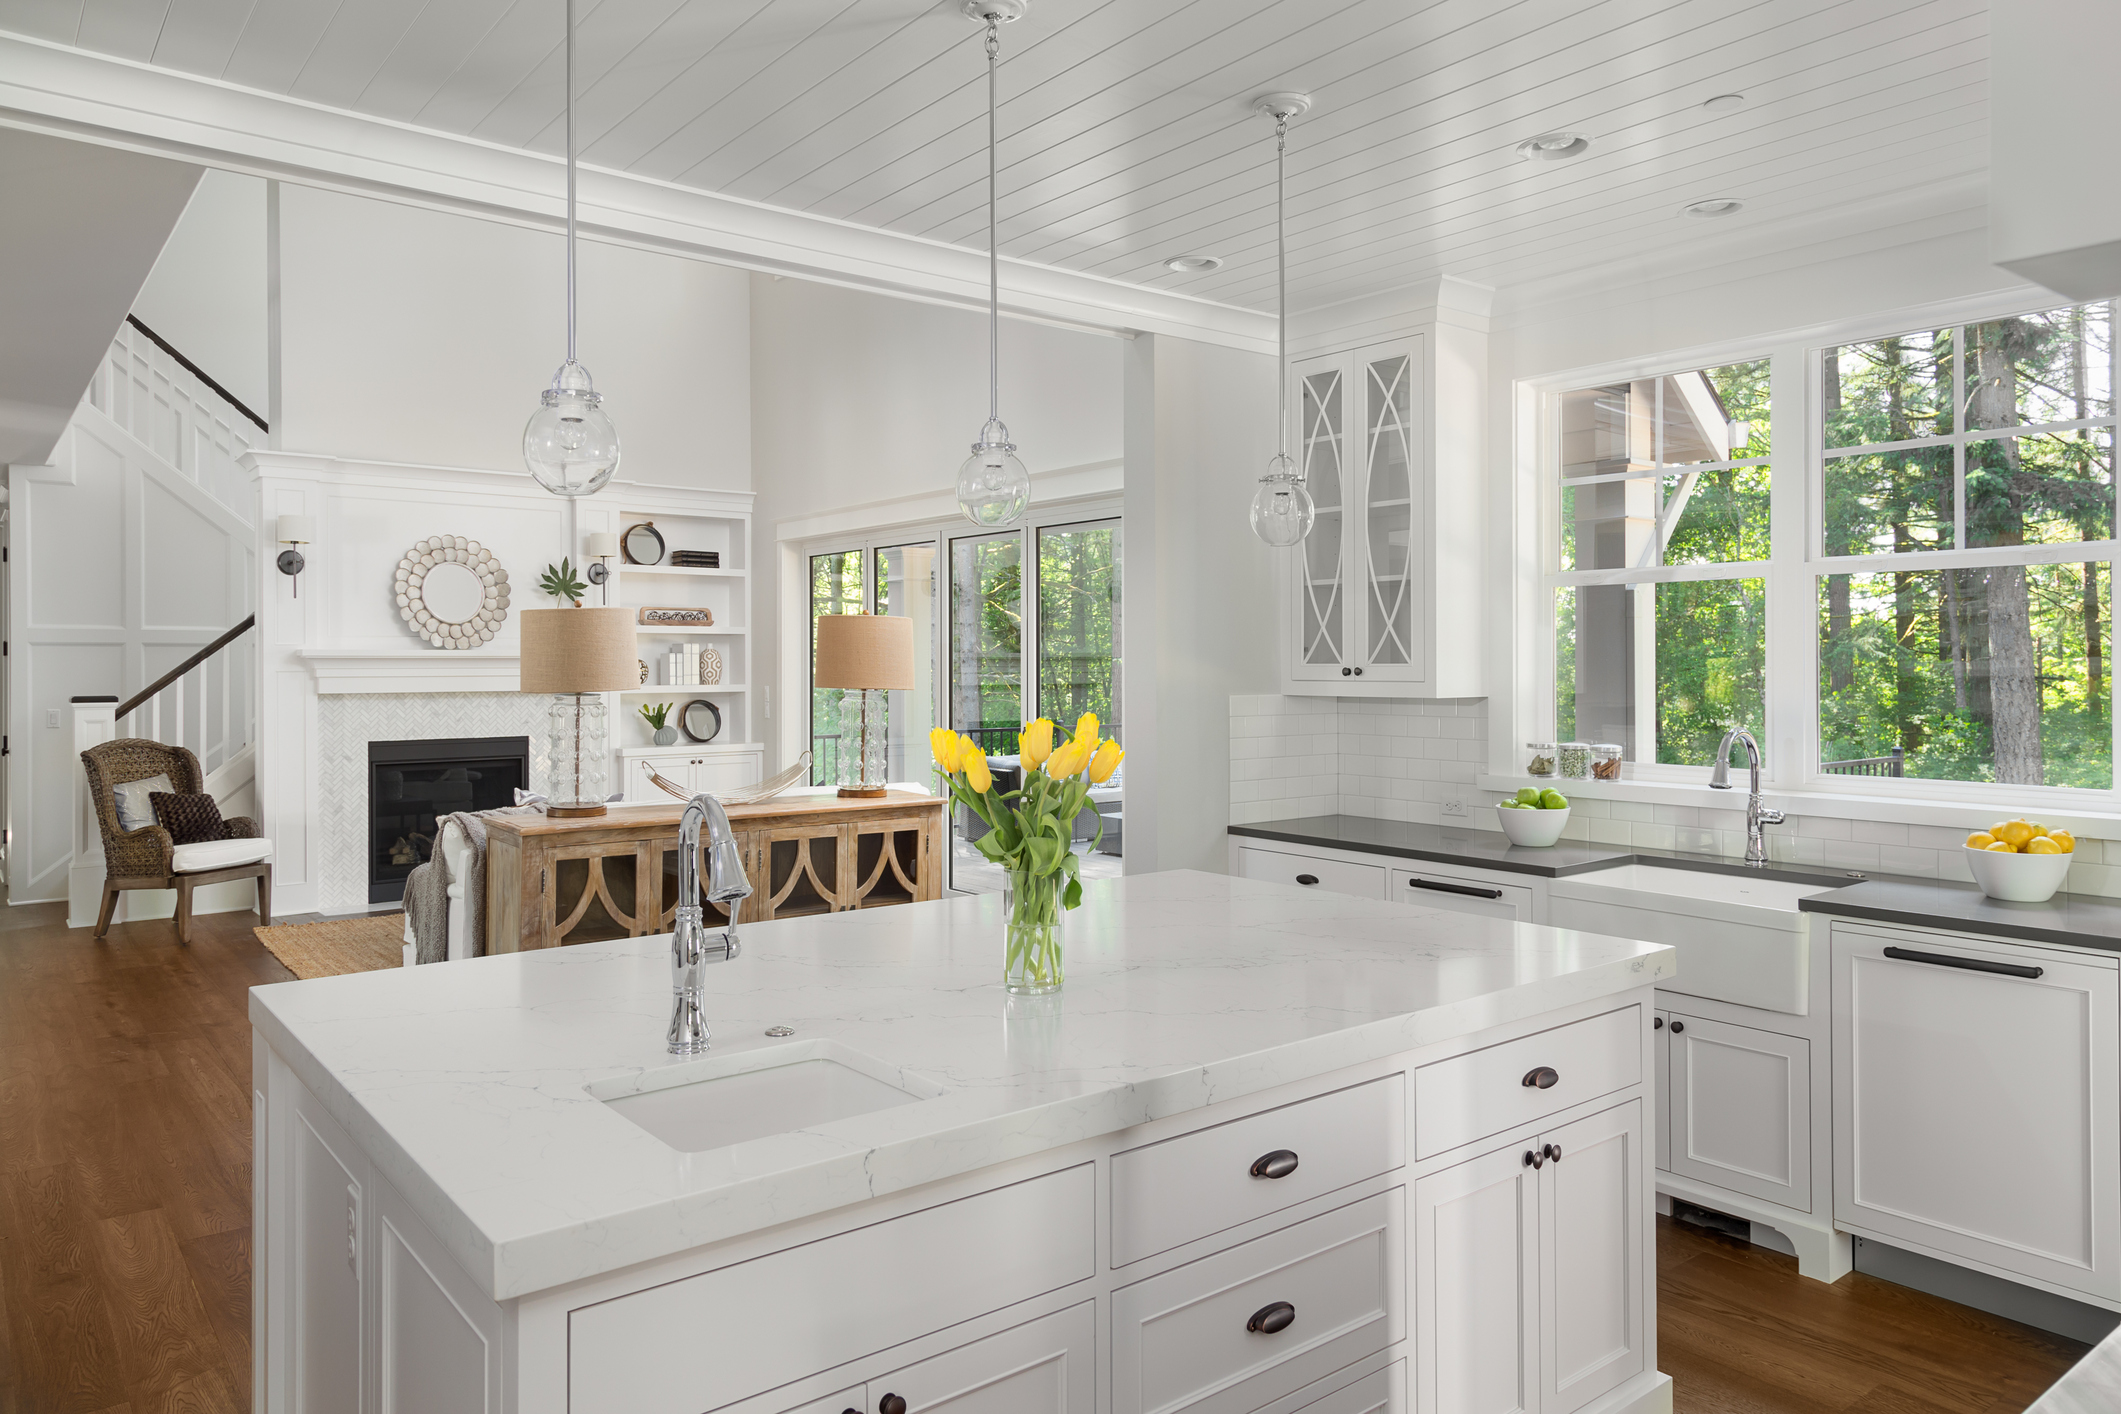 white-kitchen-interior-and-living-room-in-luxury-home.jpg